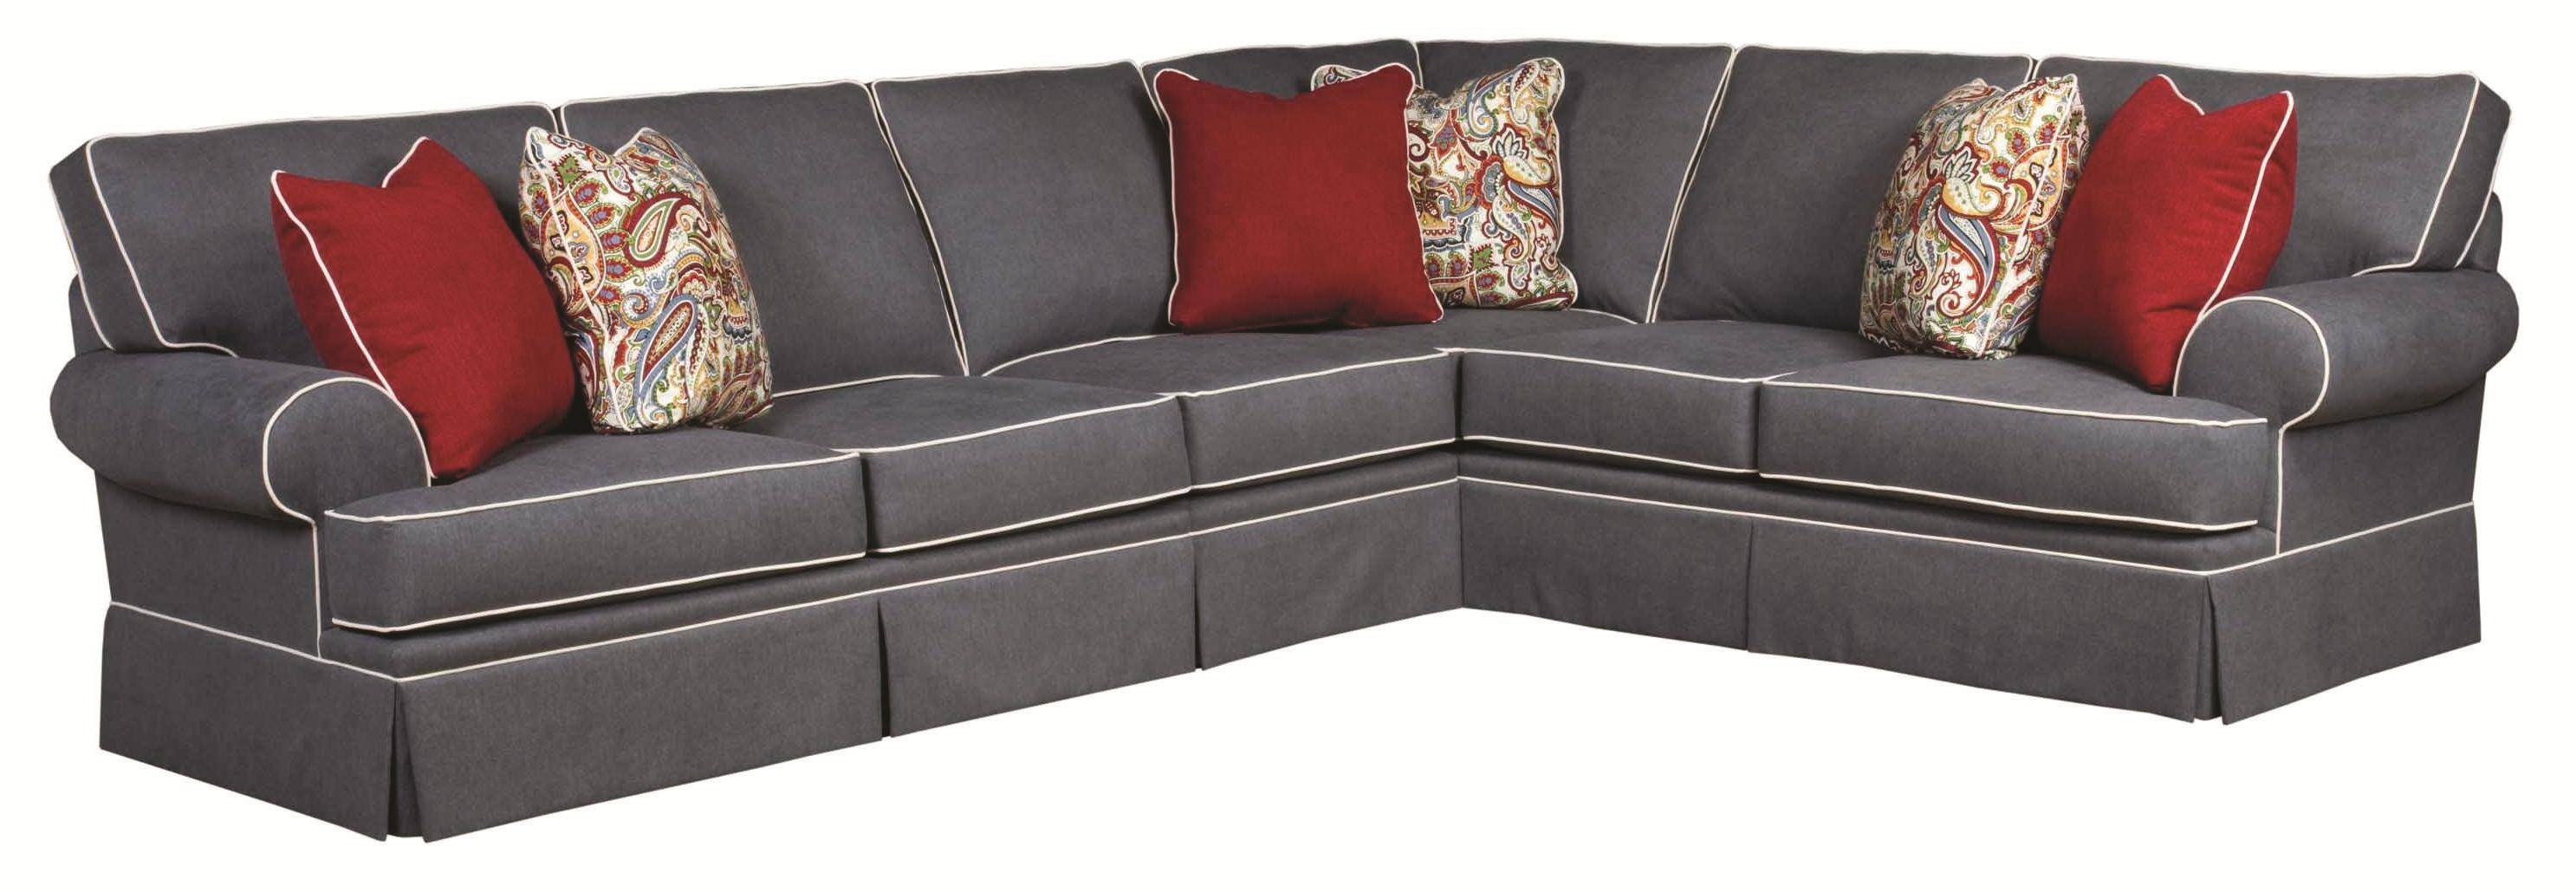 Broyhill Furniture Emily Traditional 3 Piece Sectional Sofa With within Broyhill Sectional Sofa (Image 3 of 30)